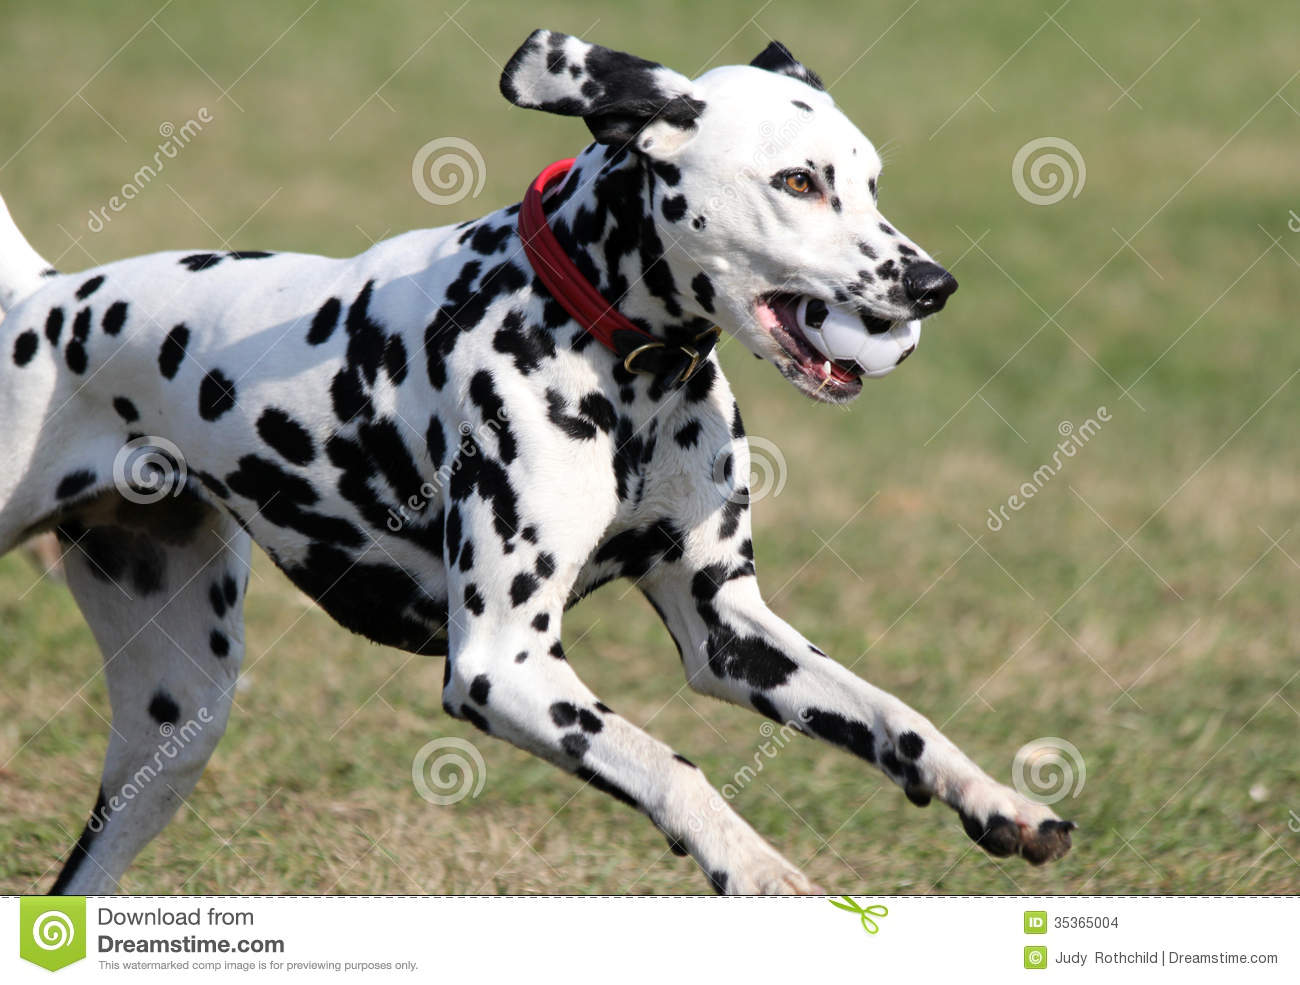 Pictures Of Black Spotted Dogs